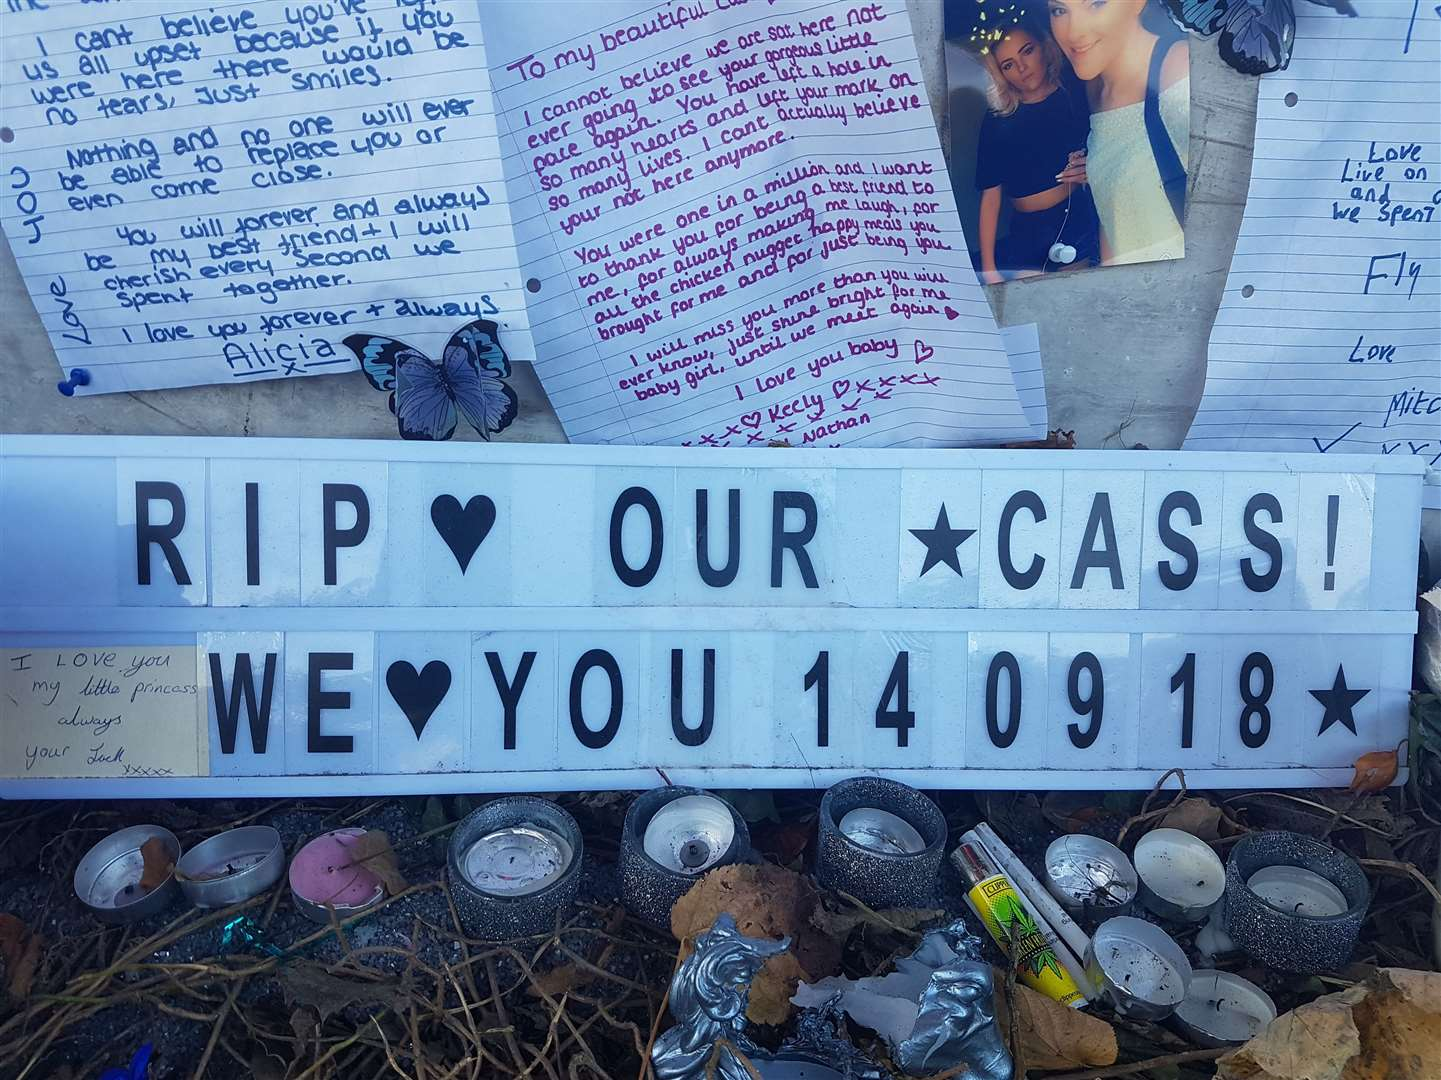 Tributes to Casey were left at the roadside